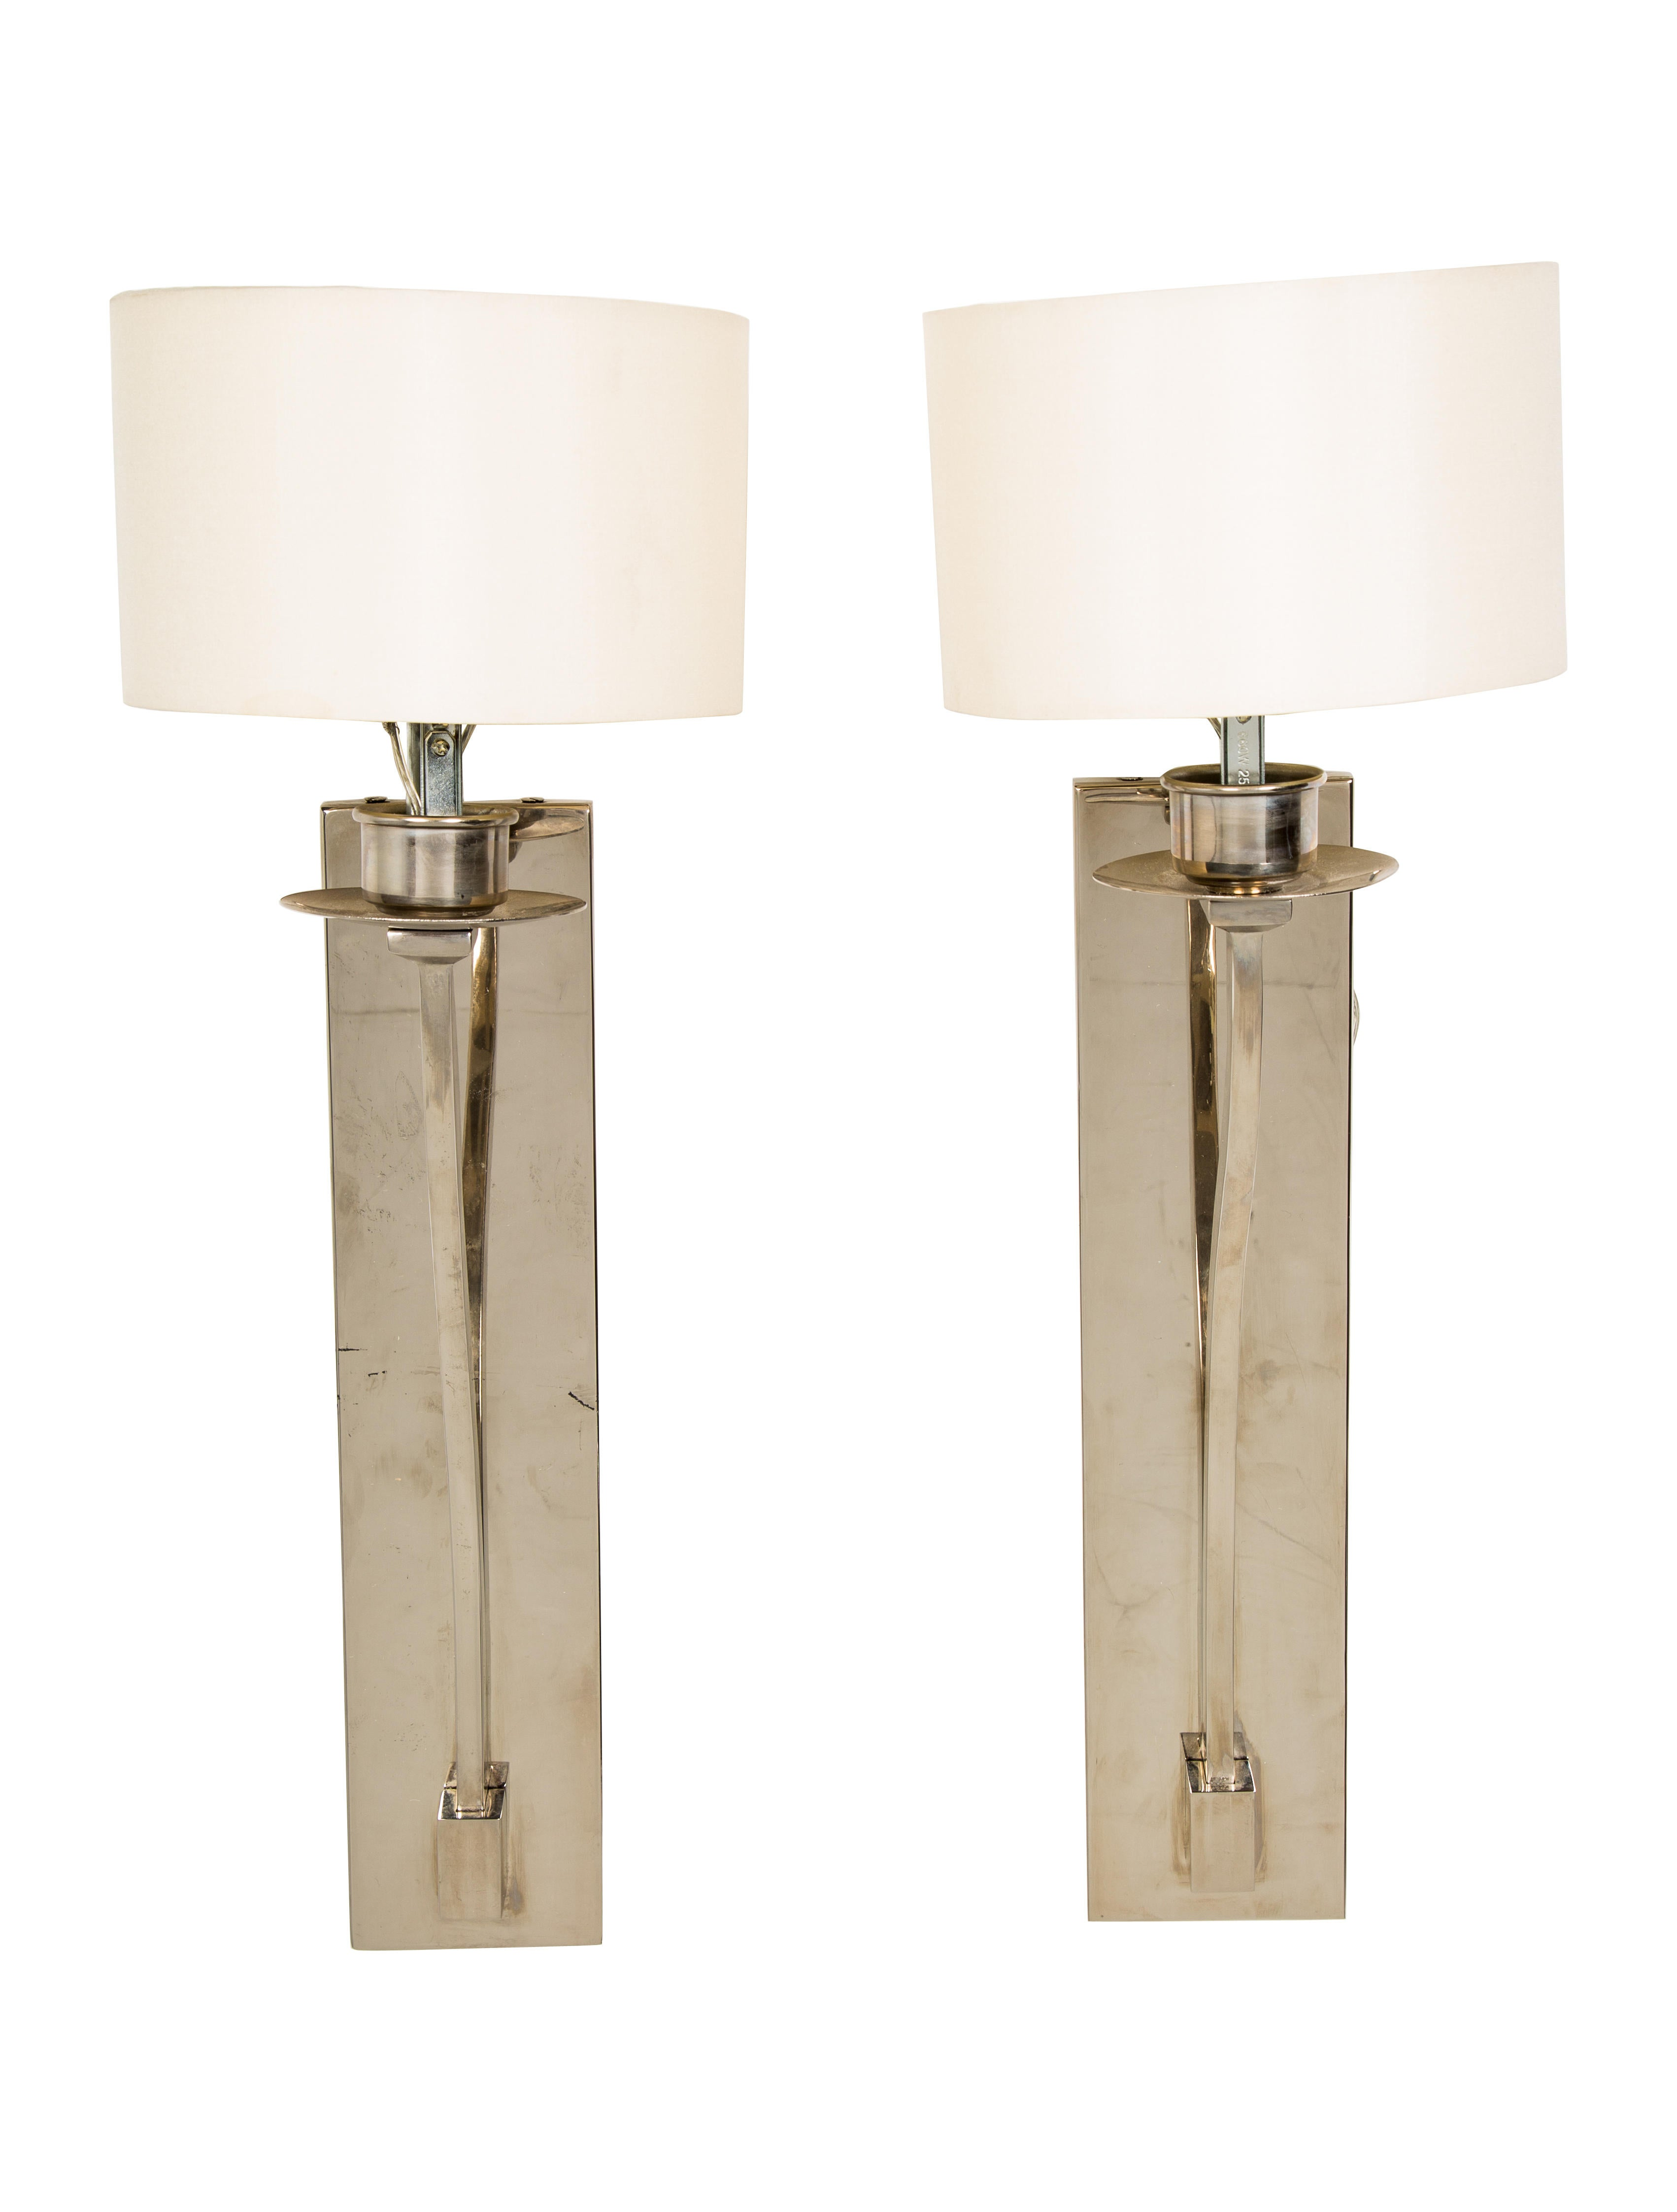 hand visual thomas product rubbed brass paper brien in sconce double np products tob comfort modern shades with vivian related natural antique o